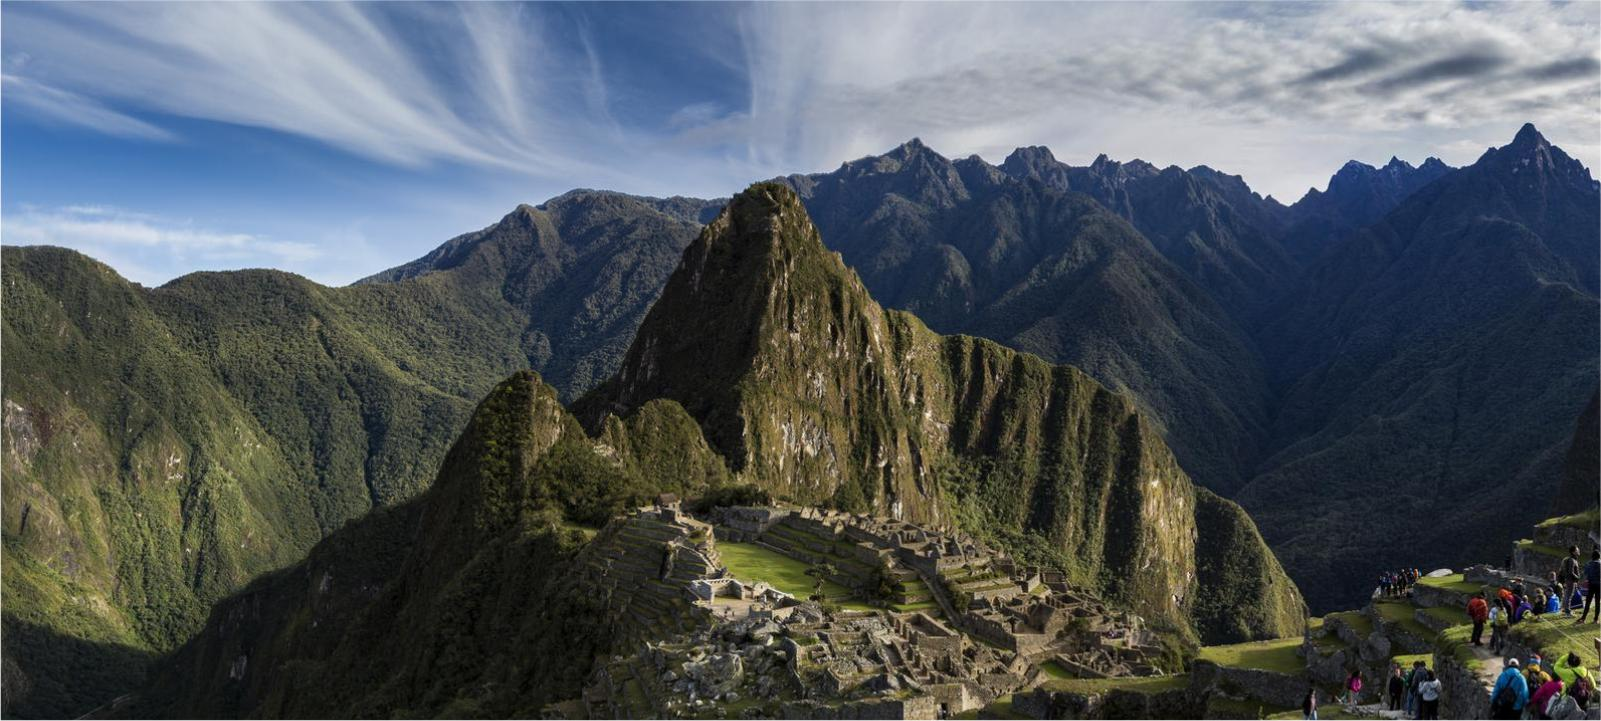 inca trail machu picchu 2019 permits availability per treks operator. Black Bedroom Furniture Sets. Home Design Ideas